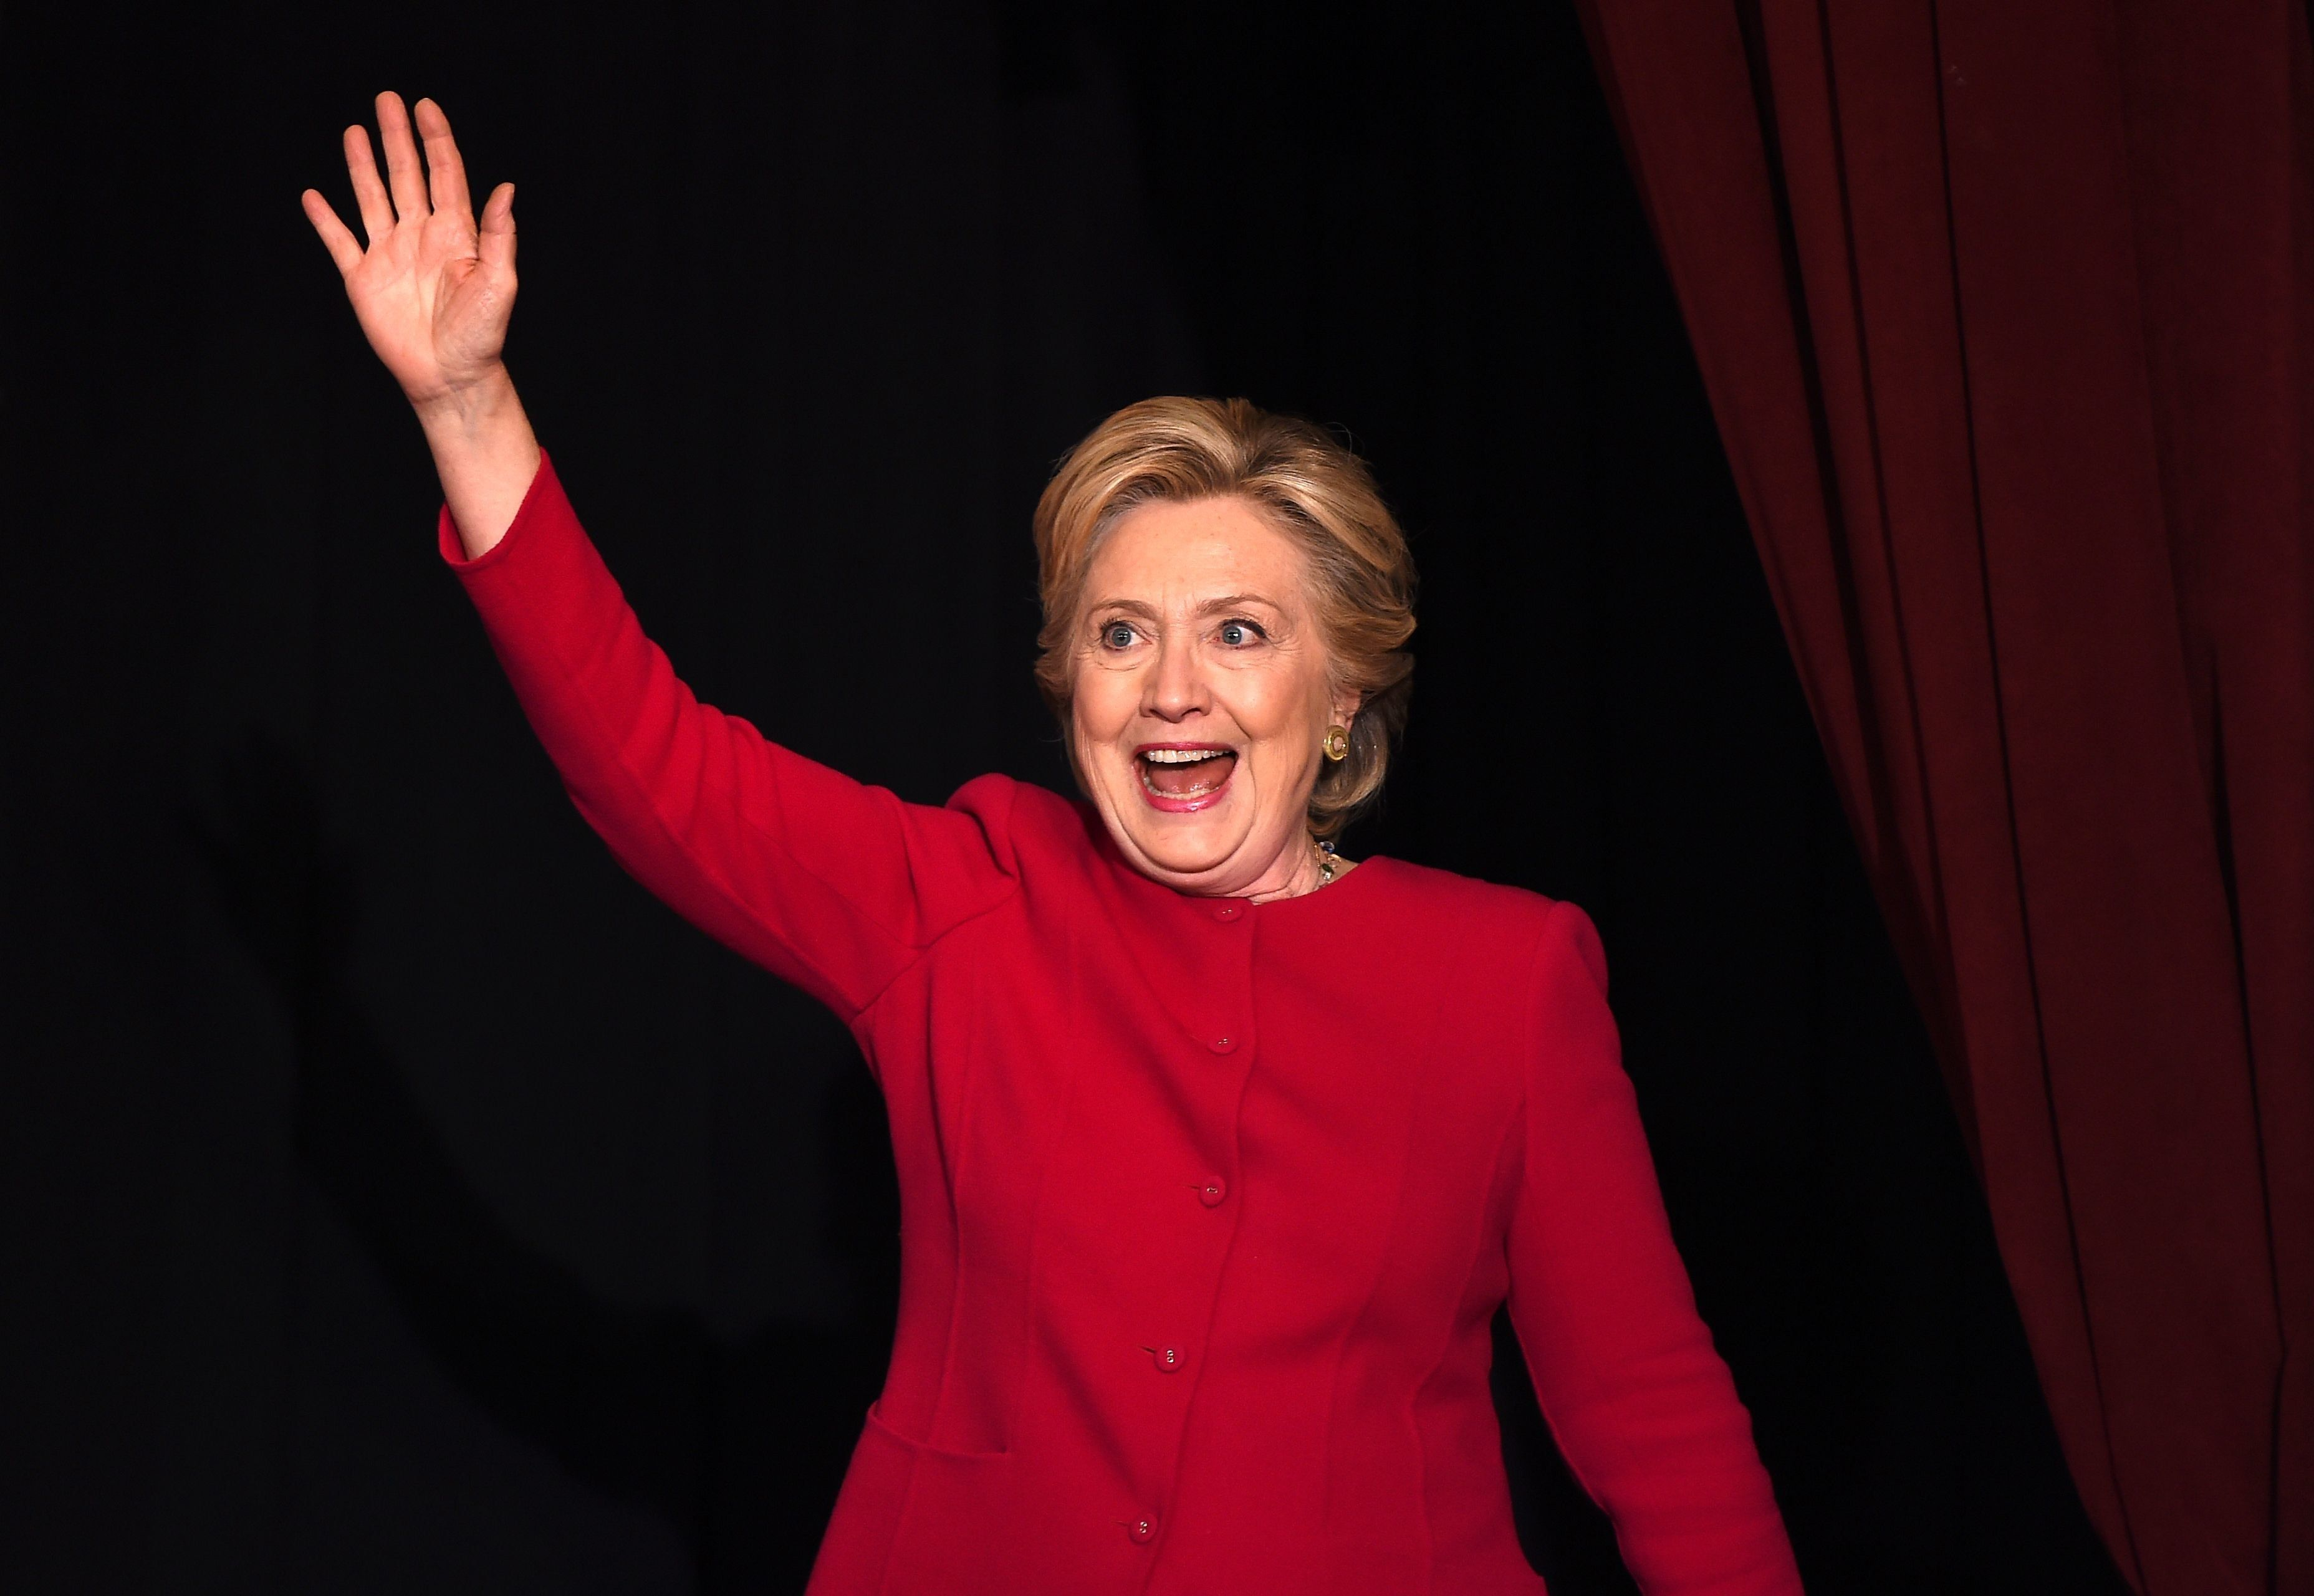 Channel Your Inner Hillary Clinton With Pantsuits For Every Nasty